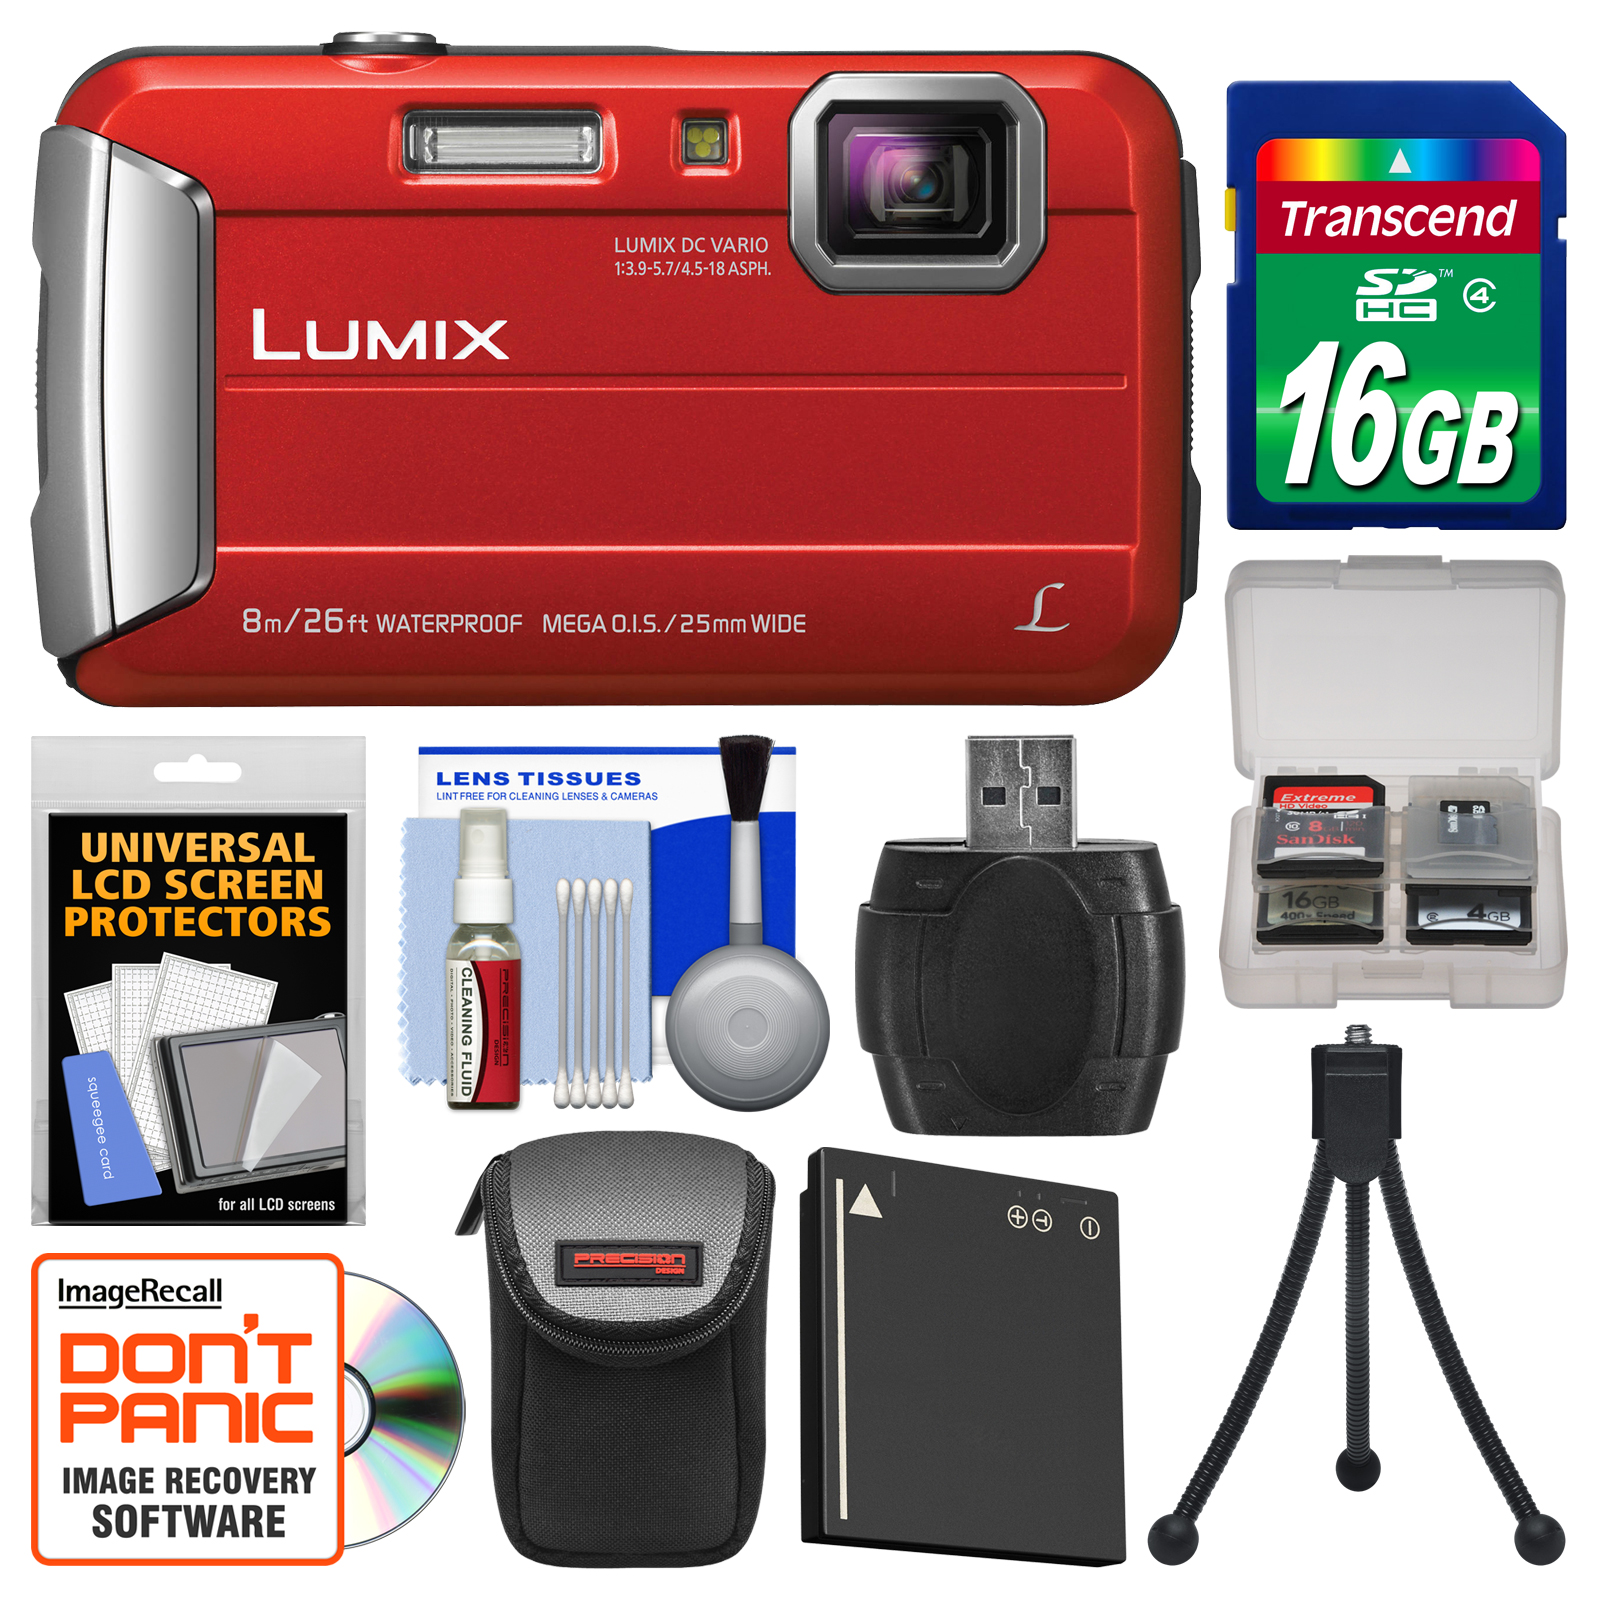 Panasonic Lumix DMC-TS30 Tough Shock & Waterproof Digital Camera (Red) with 16GB Card +